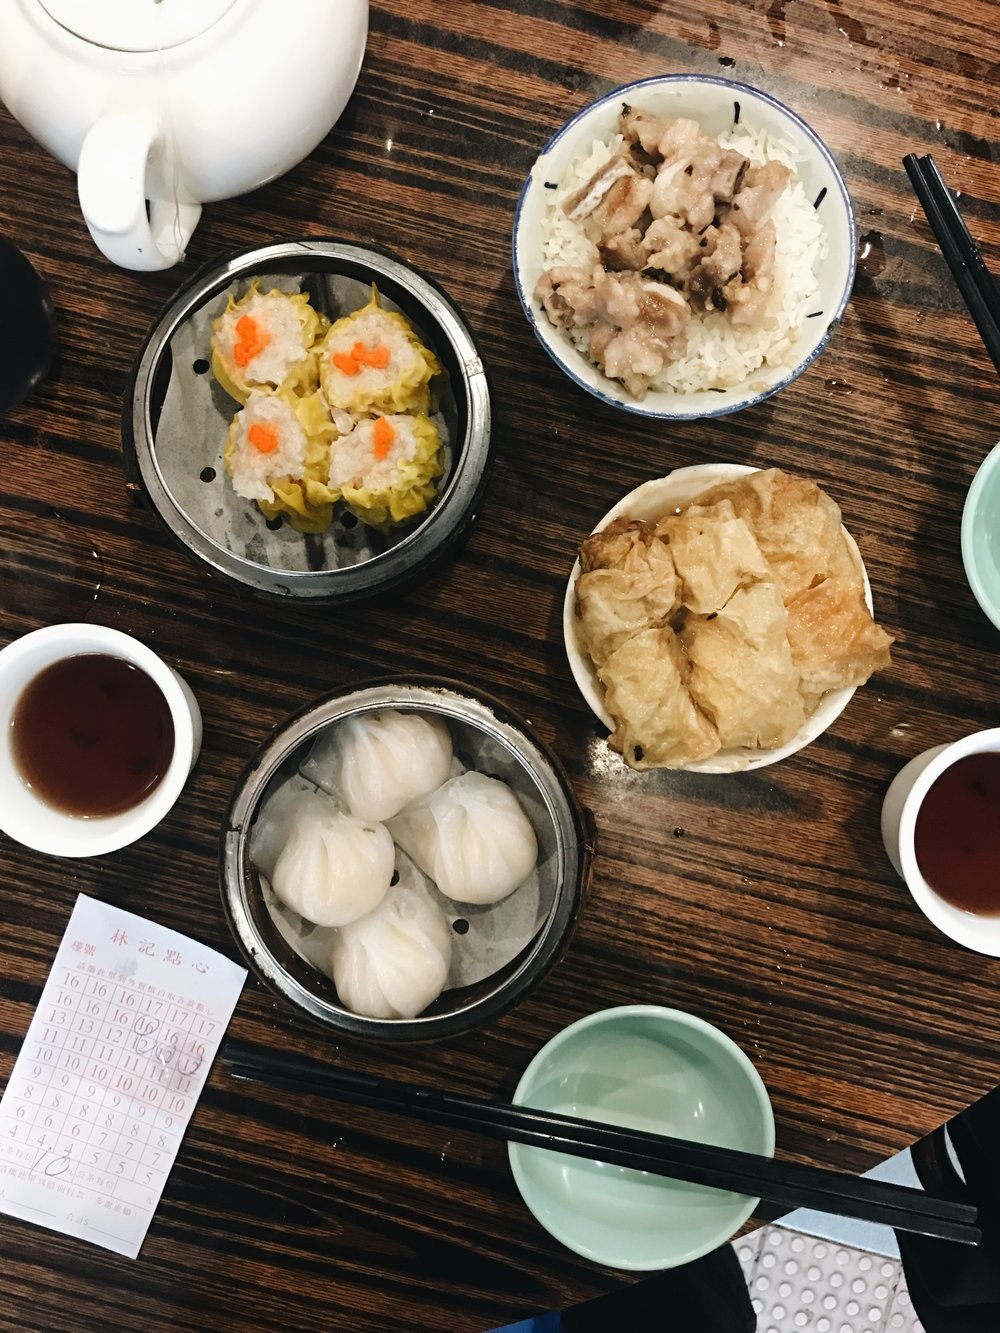 Dim sum experience: a everyday ritual of the locals. We call it the Chinese style brunch and the dishes are served in tapas!